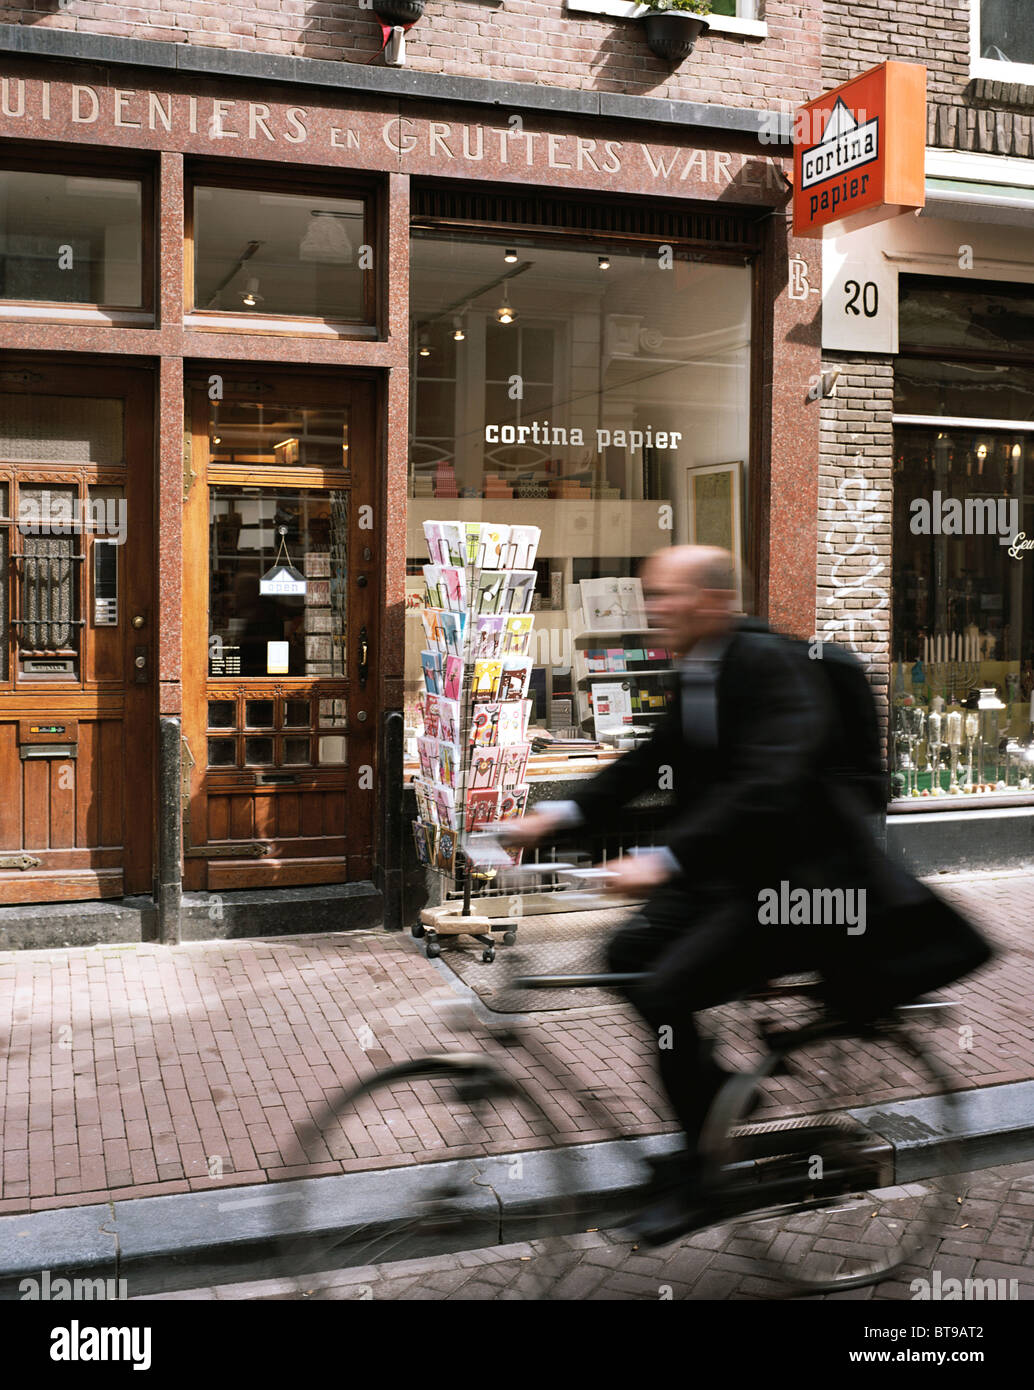 De Negen Straatjes in Amsterdam, where a bicyclist passes Cortina Papier - Stock Image